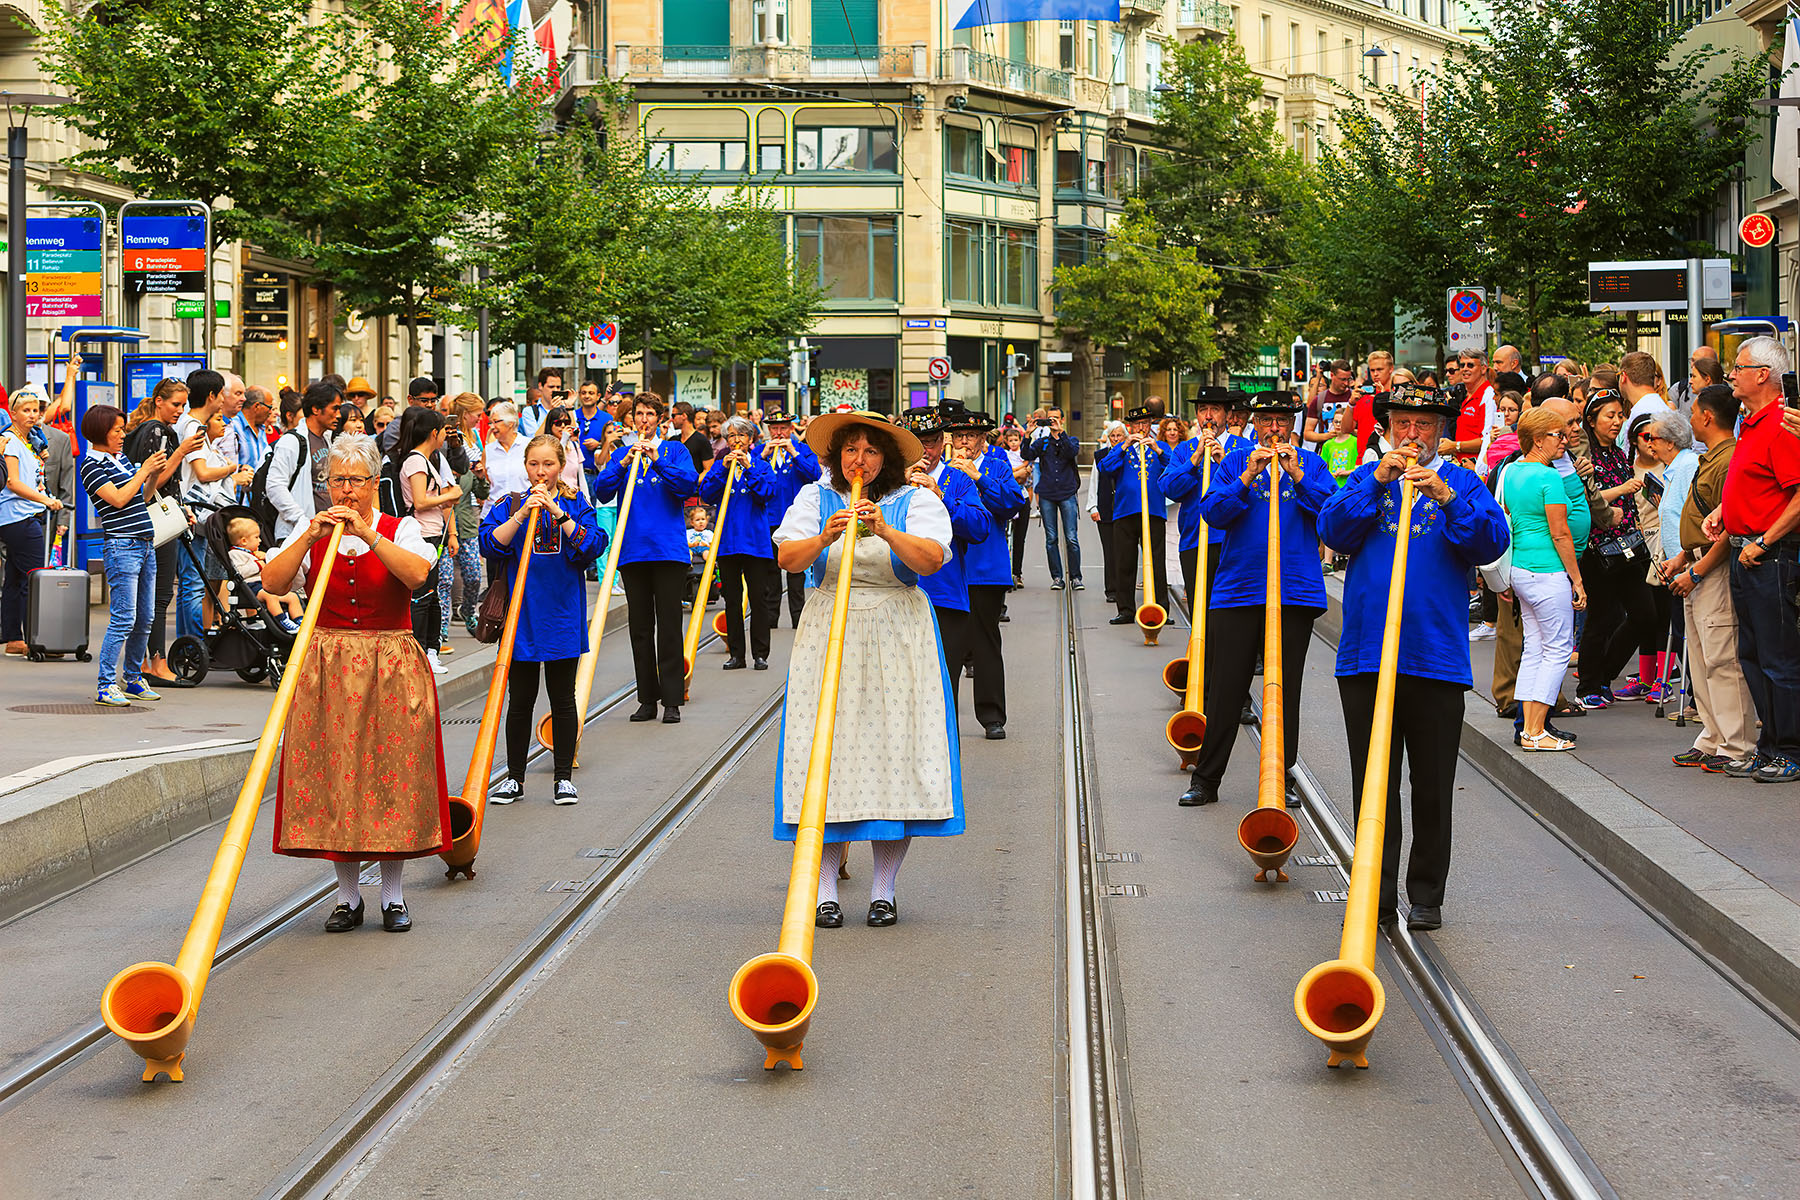 Swiss National Day parade in Zurich